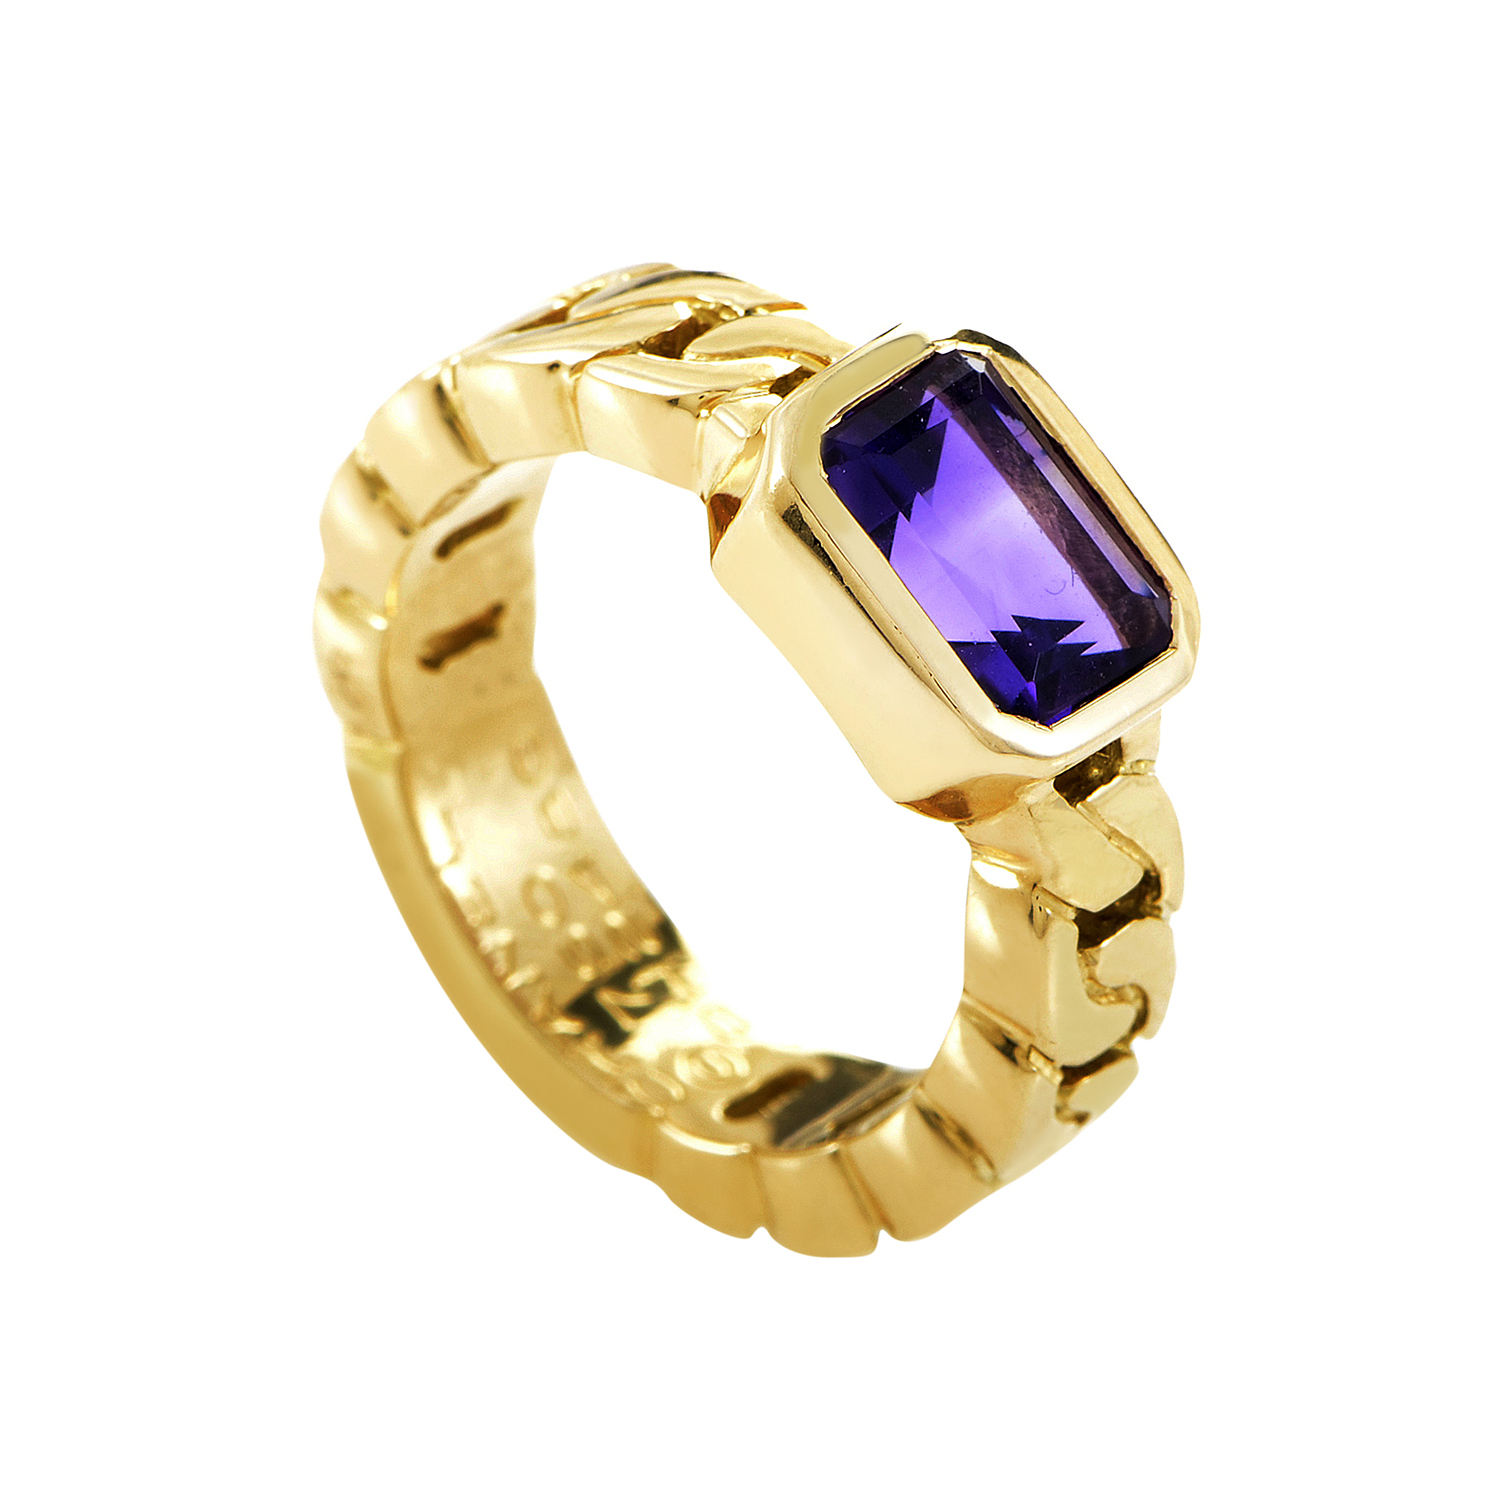 Chanel 18K Yellow Gold Amethyst Ring AK1B2278